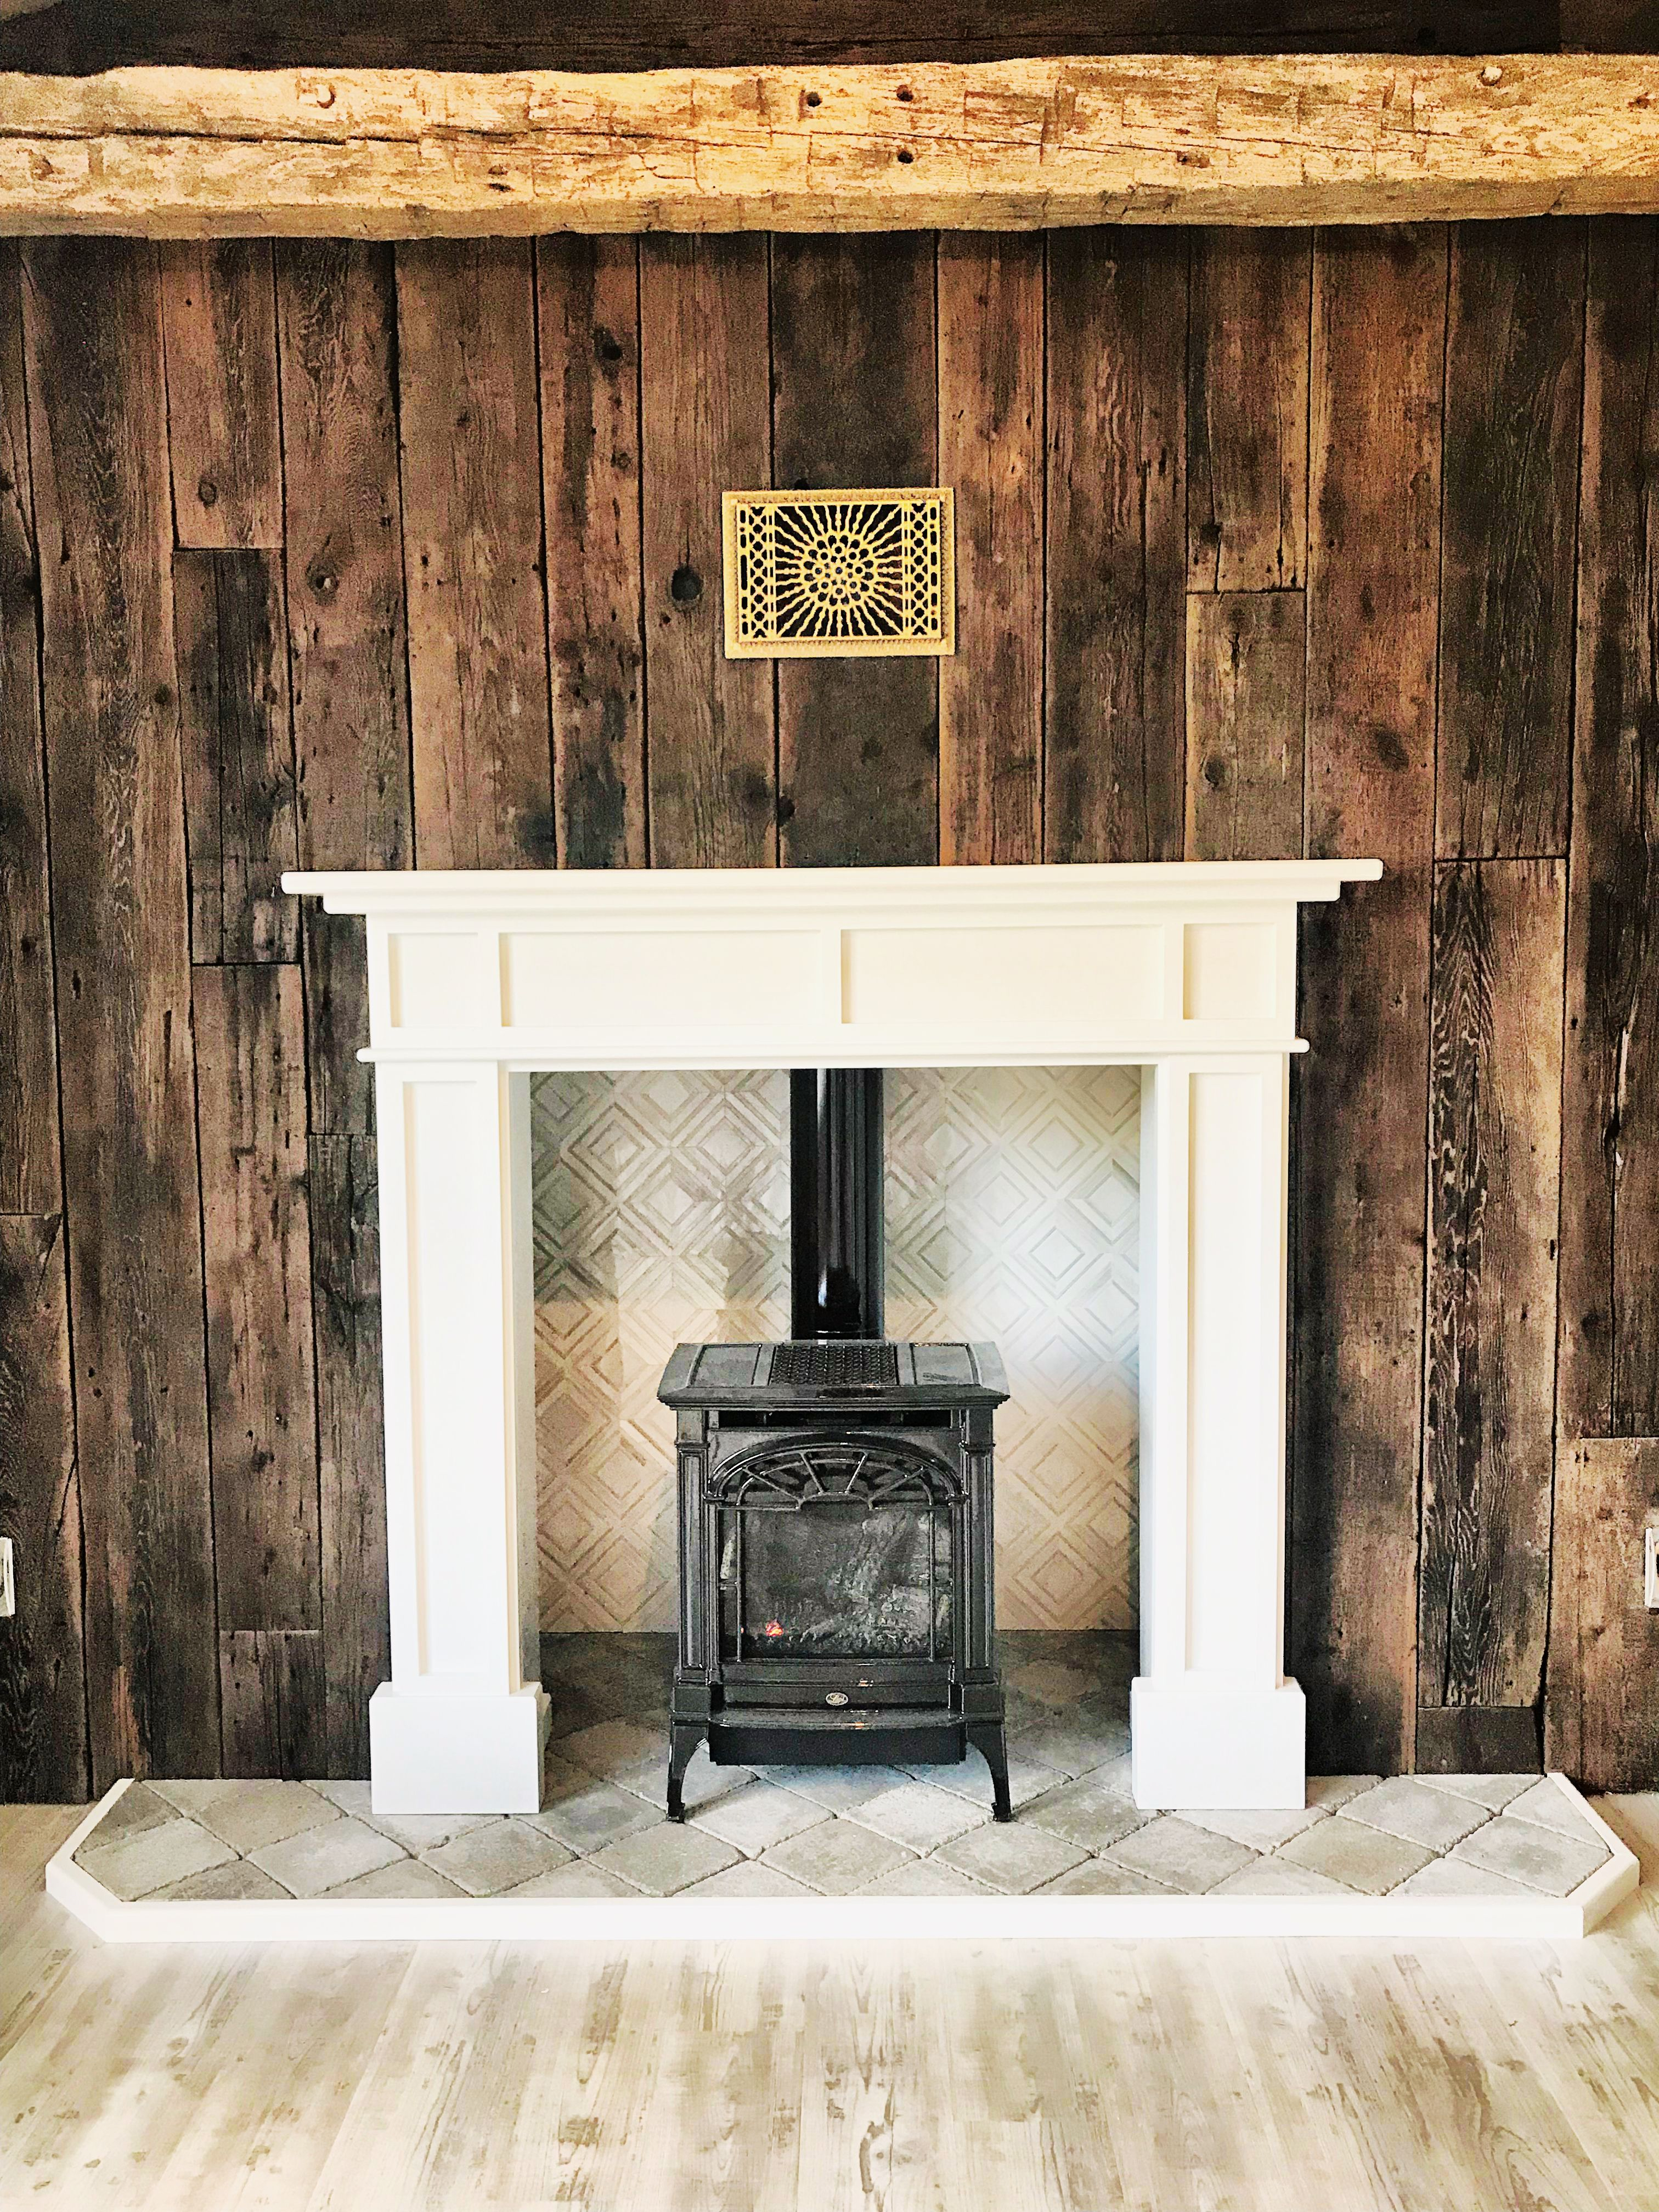 Freestanding Gas Stove Fireplace In Mantle With Barnwood Wall Freestanding Fireplace Fireplace Hearth Fireplace